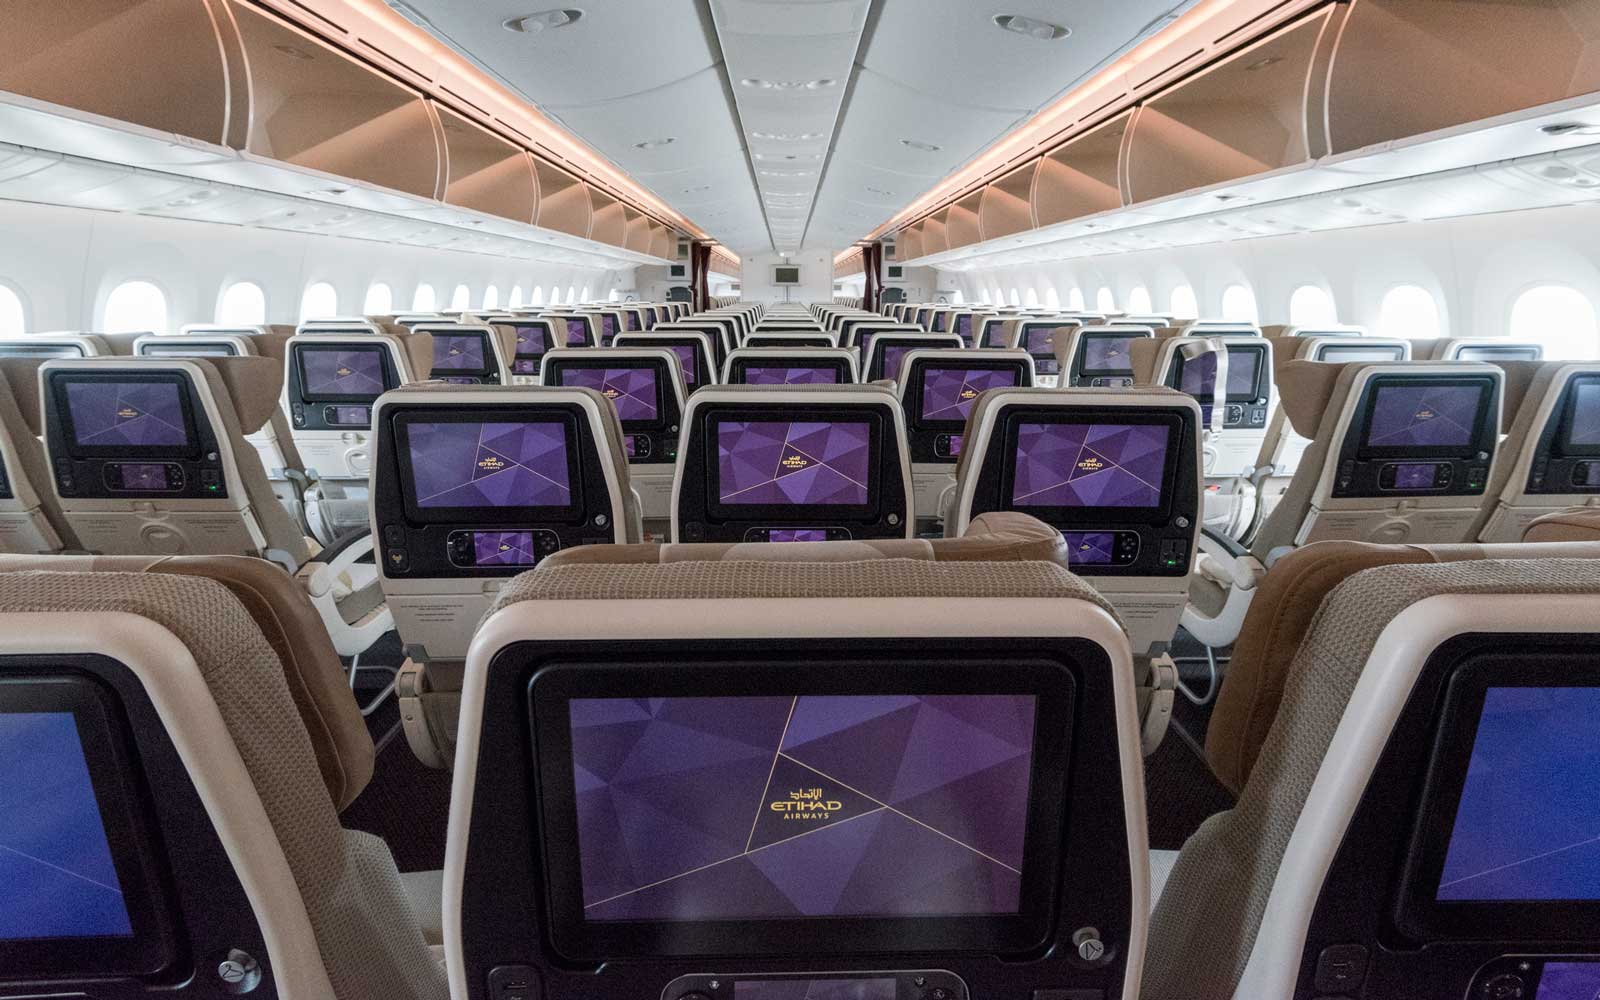 Now Even Luxury Airlines Are Charging for Seat Assignments